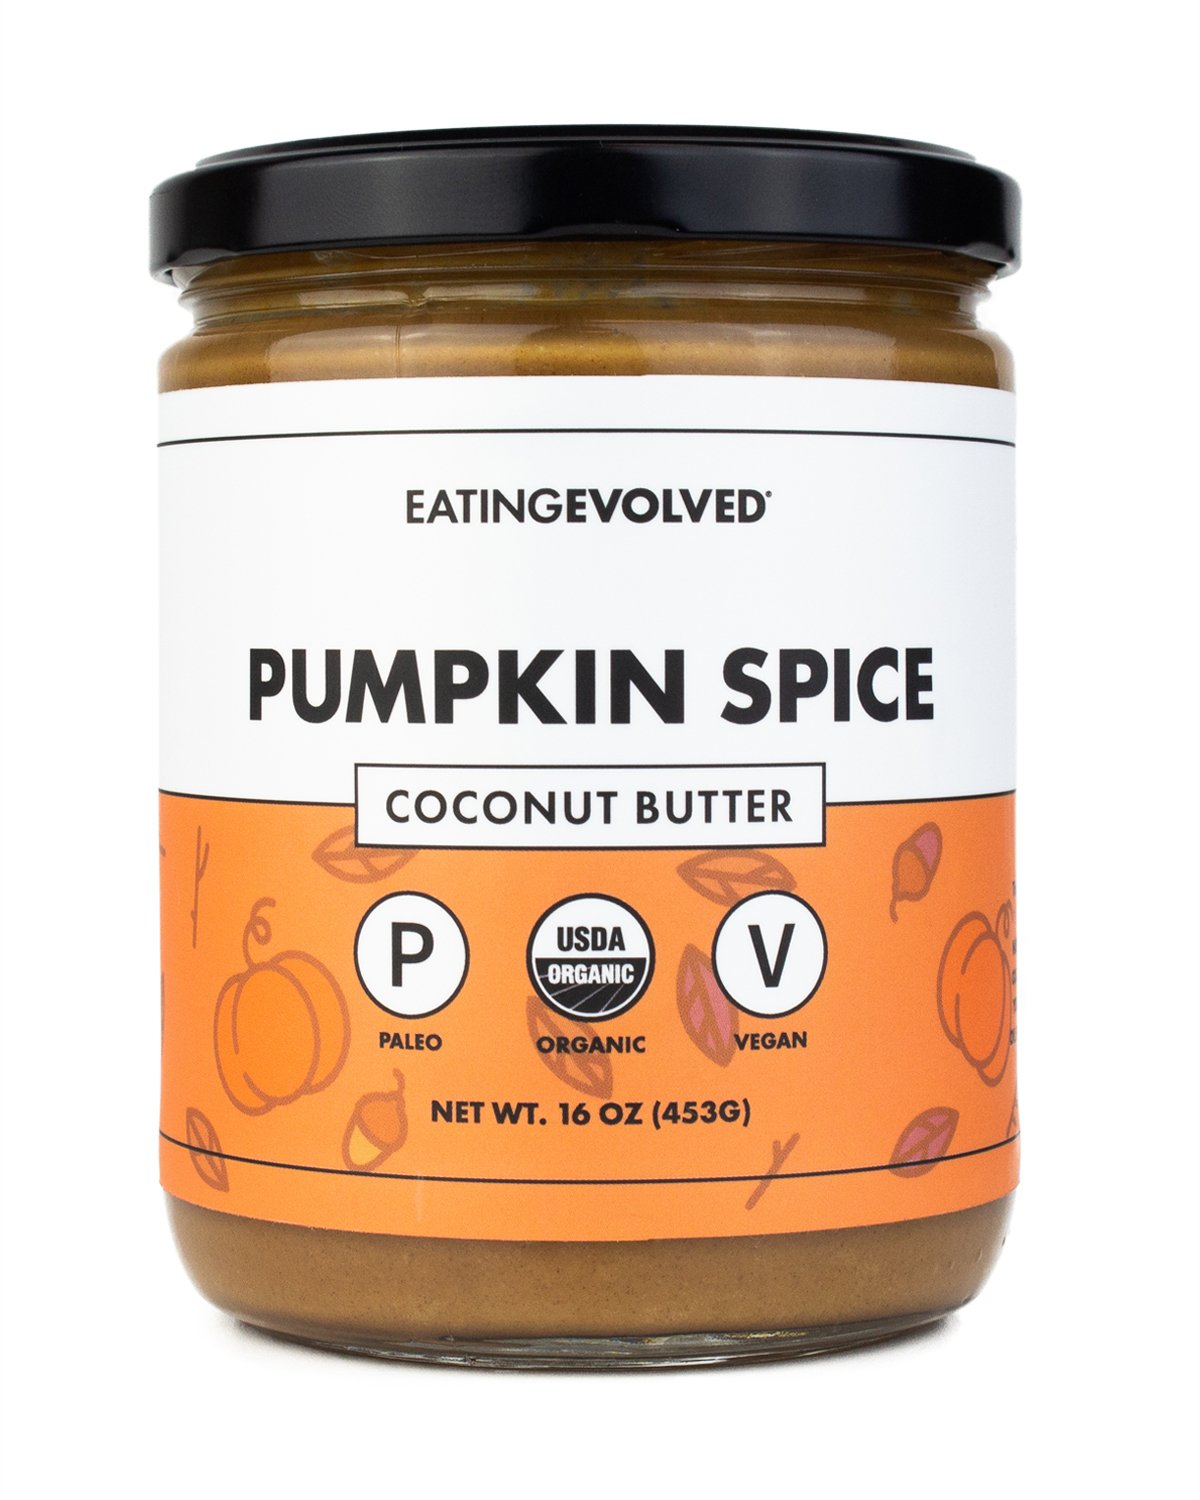 EATING EVOLVED KETO PUMPKIN SPICE SPREAD - If you are looking for a pumpkin spiced coconut butter that isn't too sweet, then look no further. I have been adding this to my coffee, my smoothies, and eating it straight from the jar! It's packed with MCT oil (bye bye brain fog), and it's not too sweet (sweetened with monkfruit extract). Order from their website. ($10)